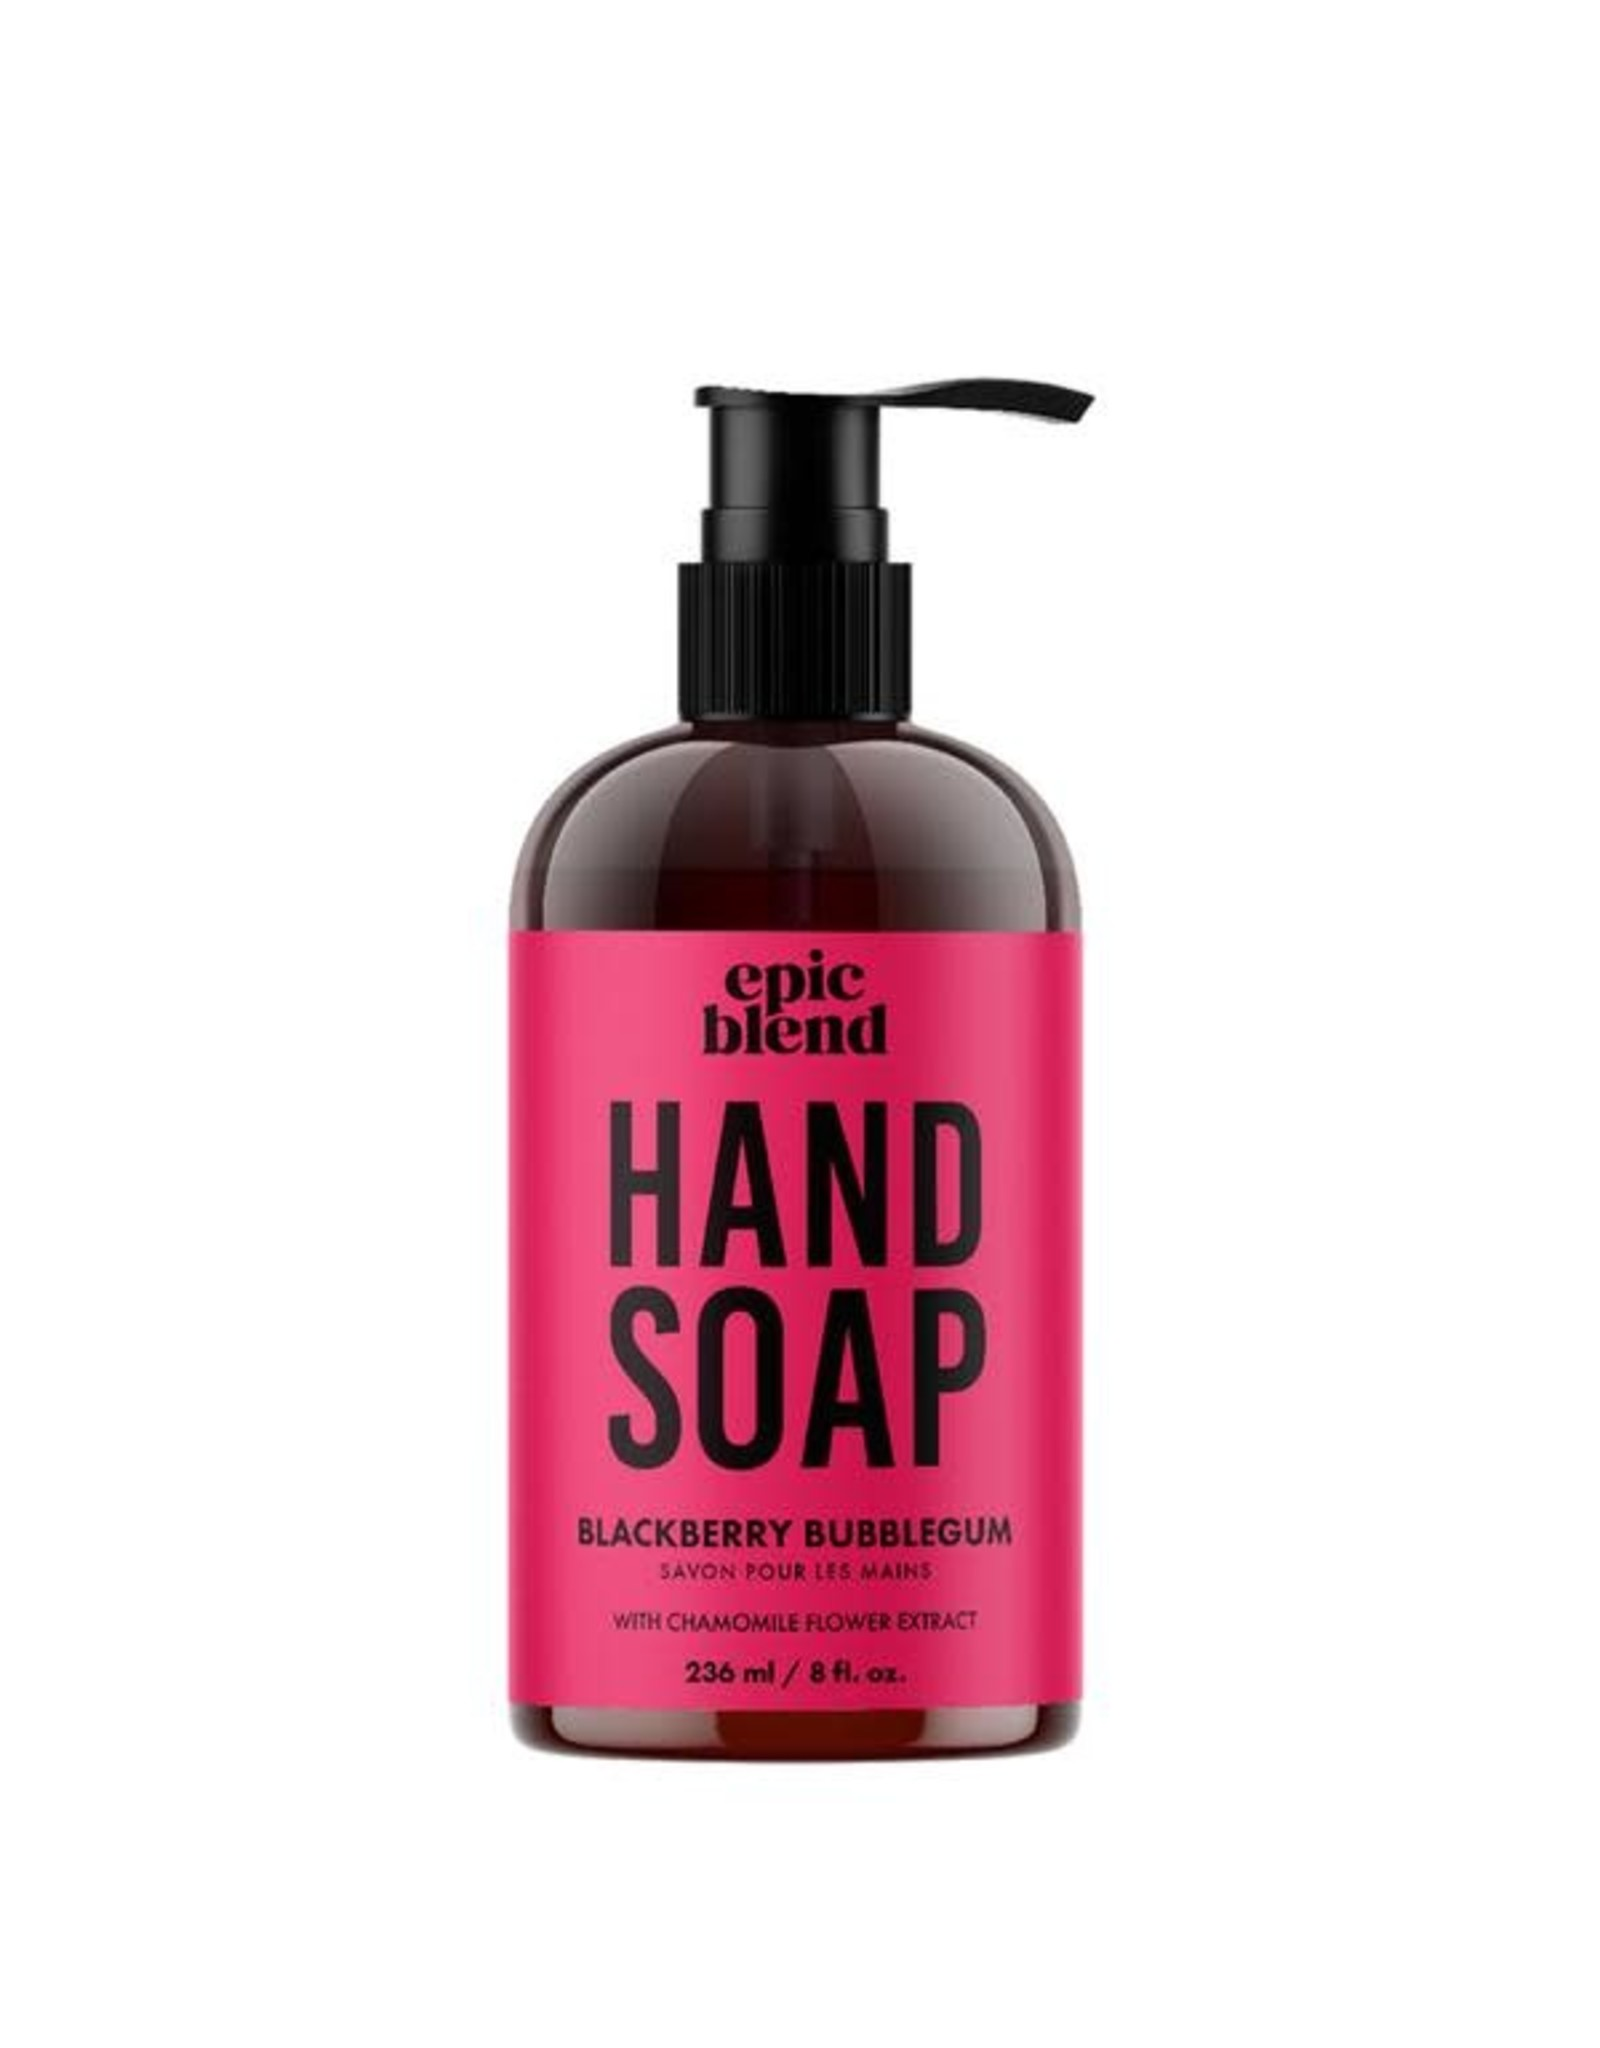 Epic Blend Blackberry Bubblegum Hand Soap